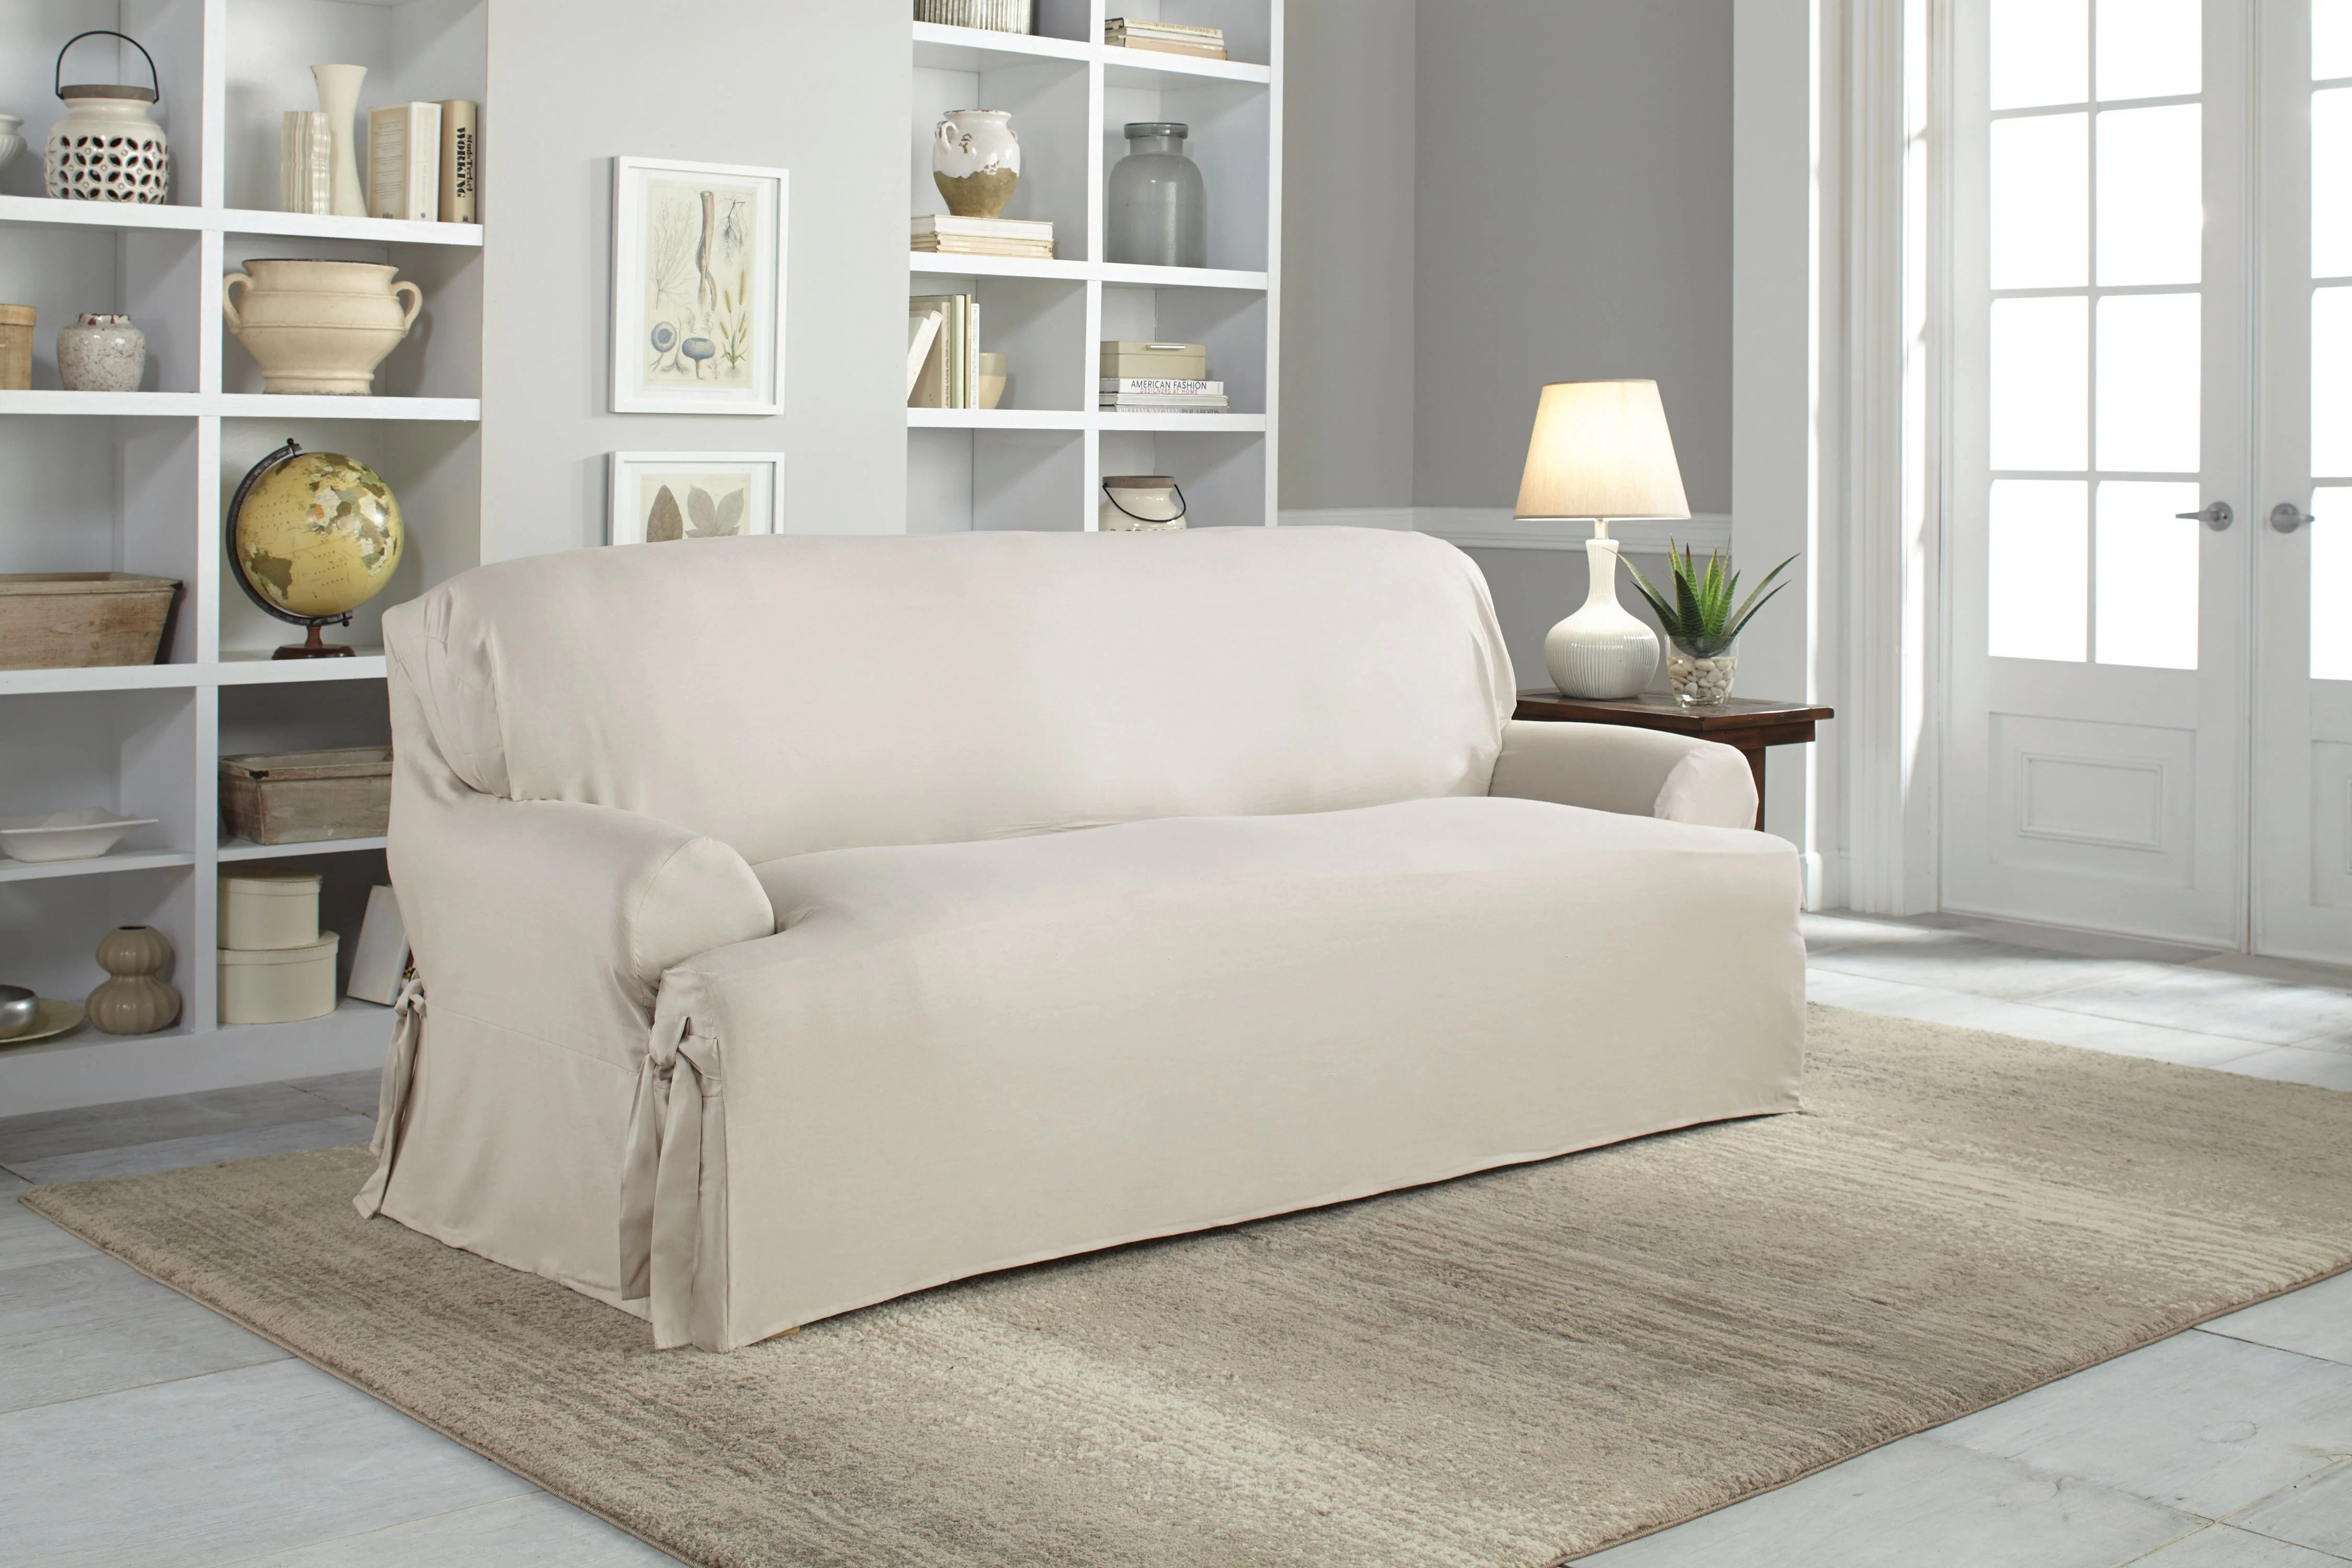 hovas sofa dimensions wood frame loose cushions where can i buy slipcovers for sofas the pottery barn